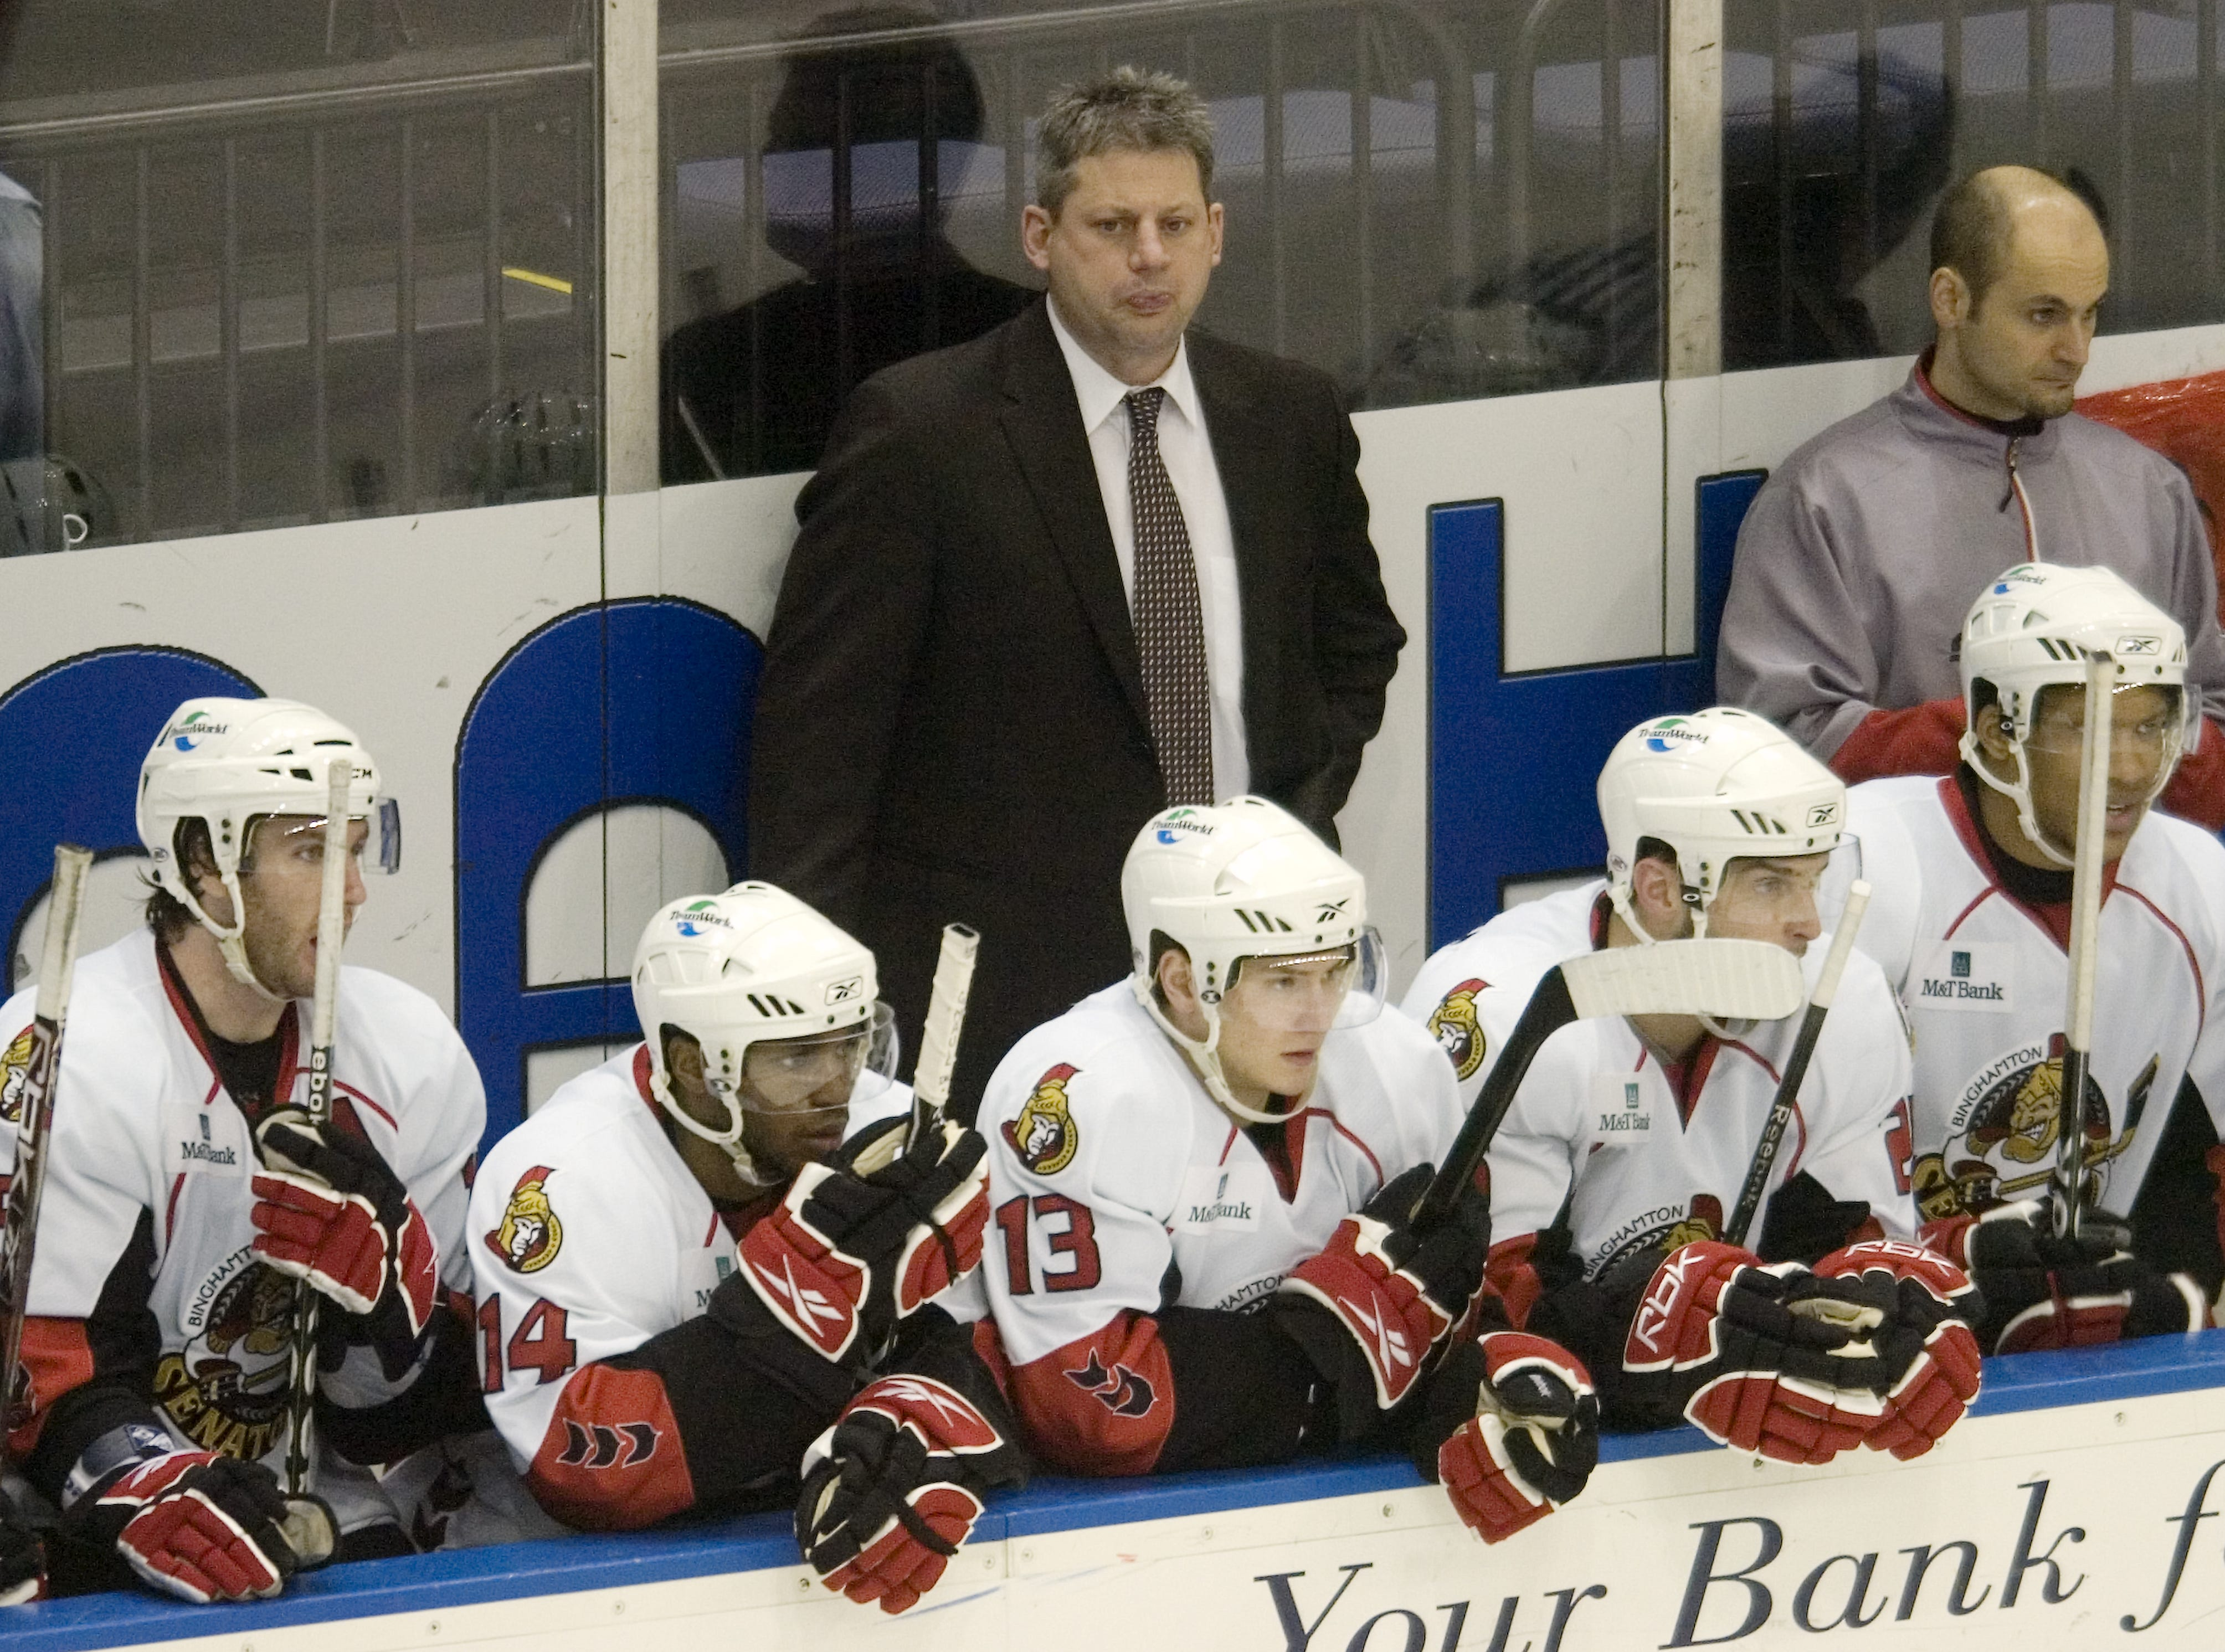 2009: Binghamton Senators coach Curtis Hunt behind the bench during a game in February 2009.